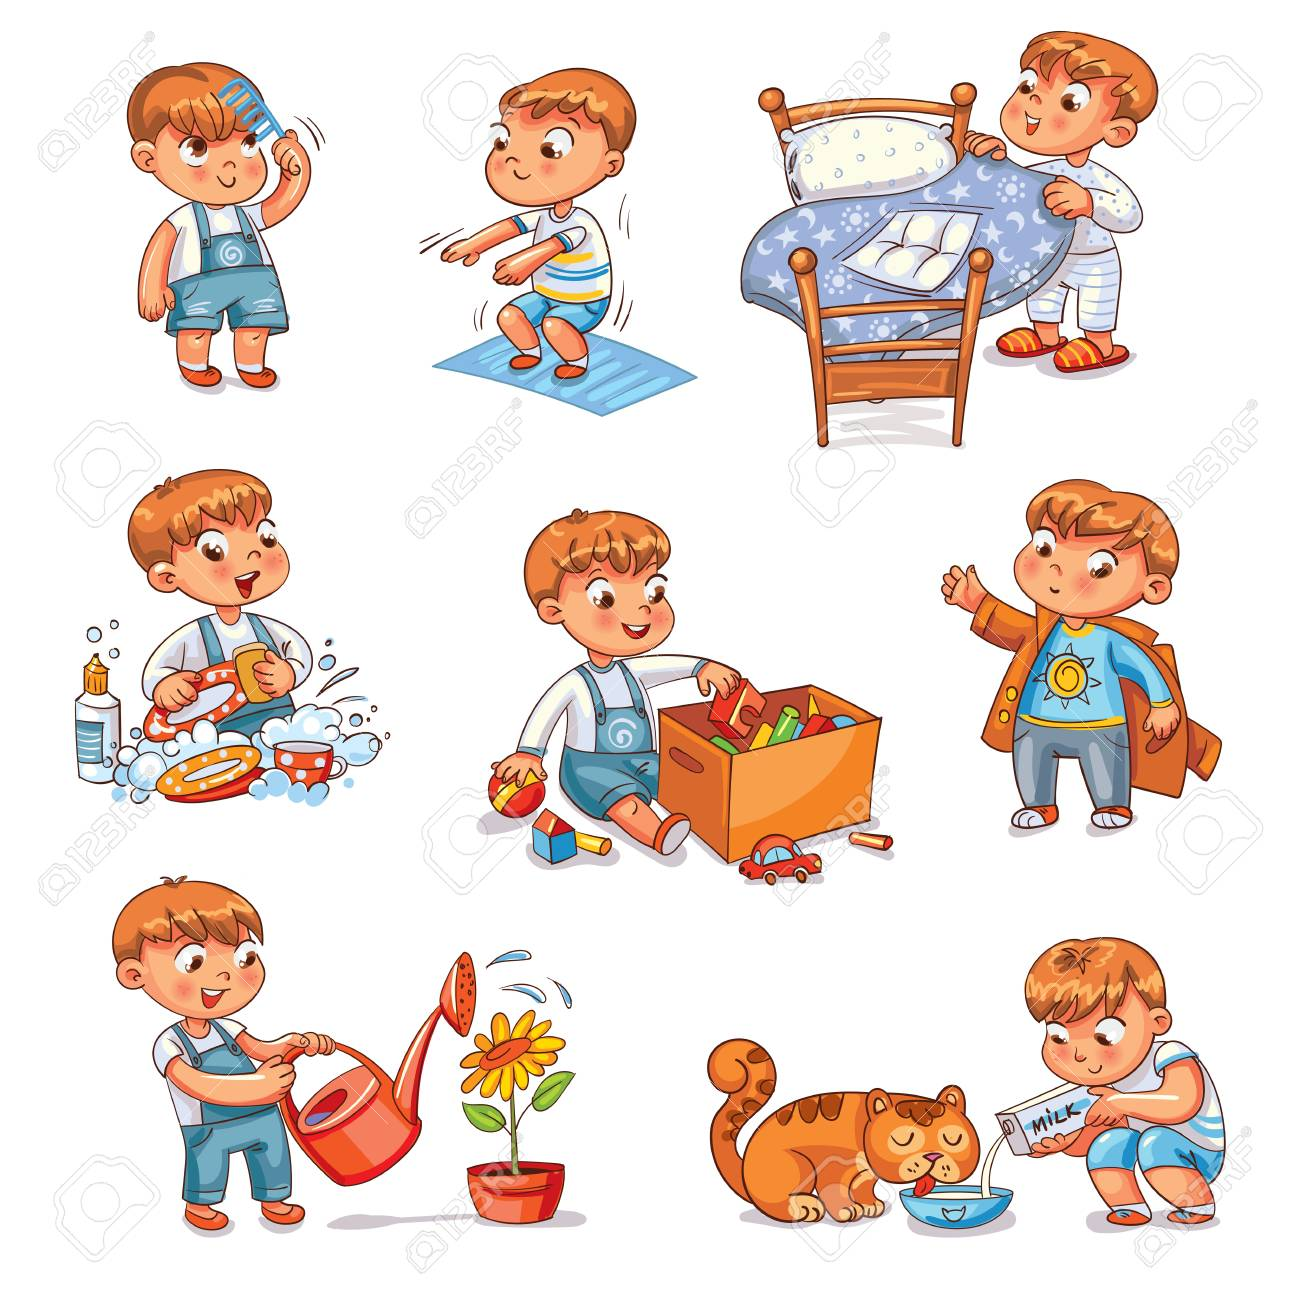 Daily routine. Child is combing his hair. Boy washes dishes. Kid is putting his toys in a box. Child makes bed. Kid himself clothes. Boy doing fitness exercise. Baby feeds a pet. - 91740727